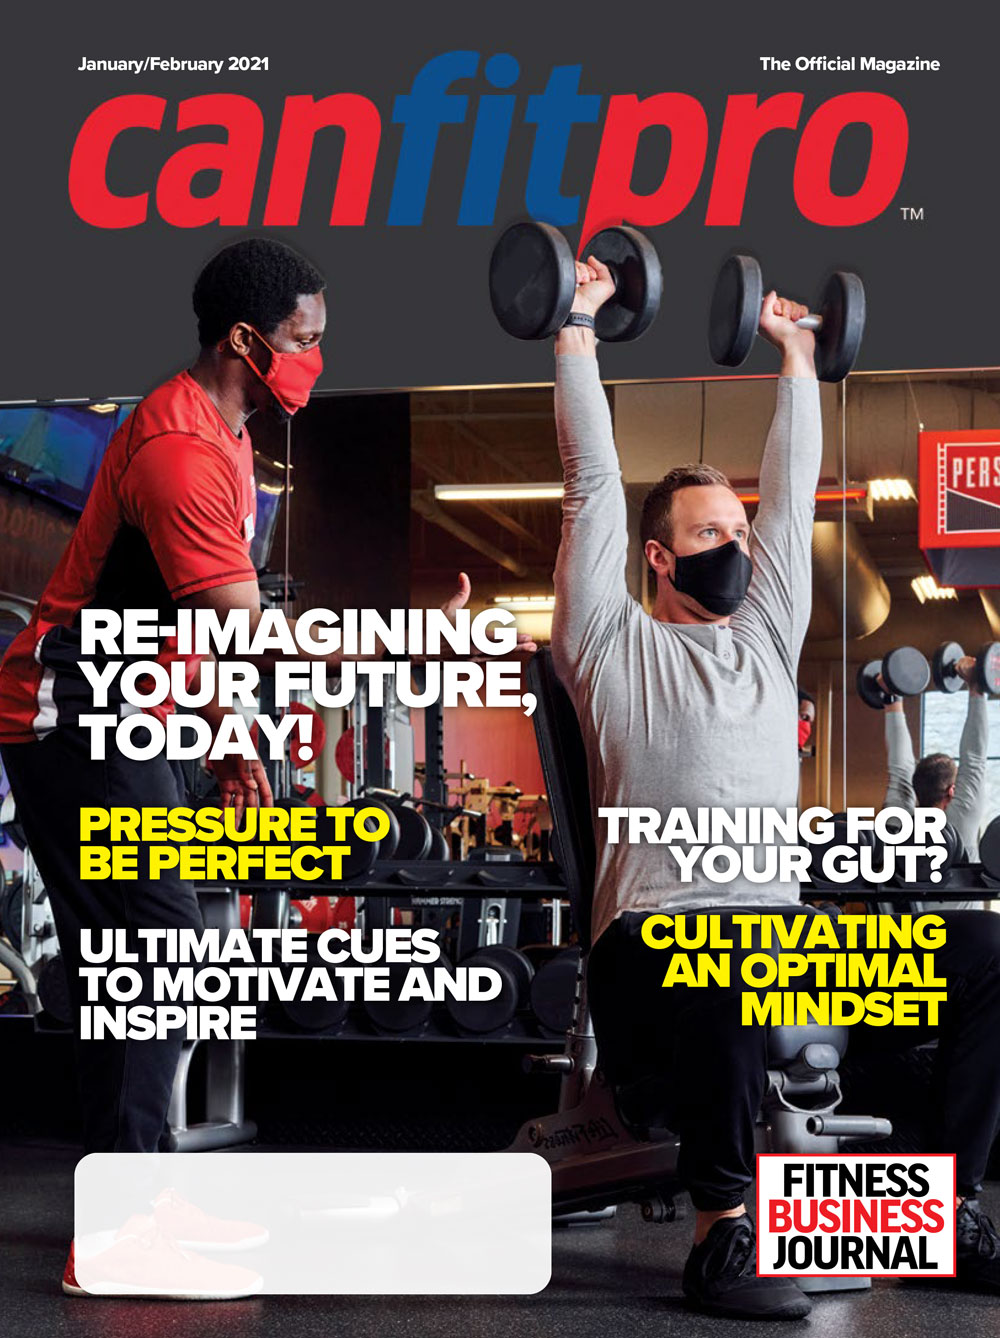 canfitpro official magazine - Jan/Feb 2021 cover